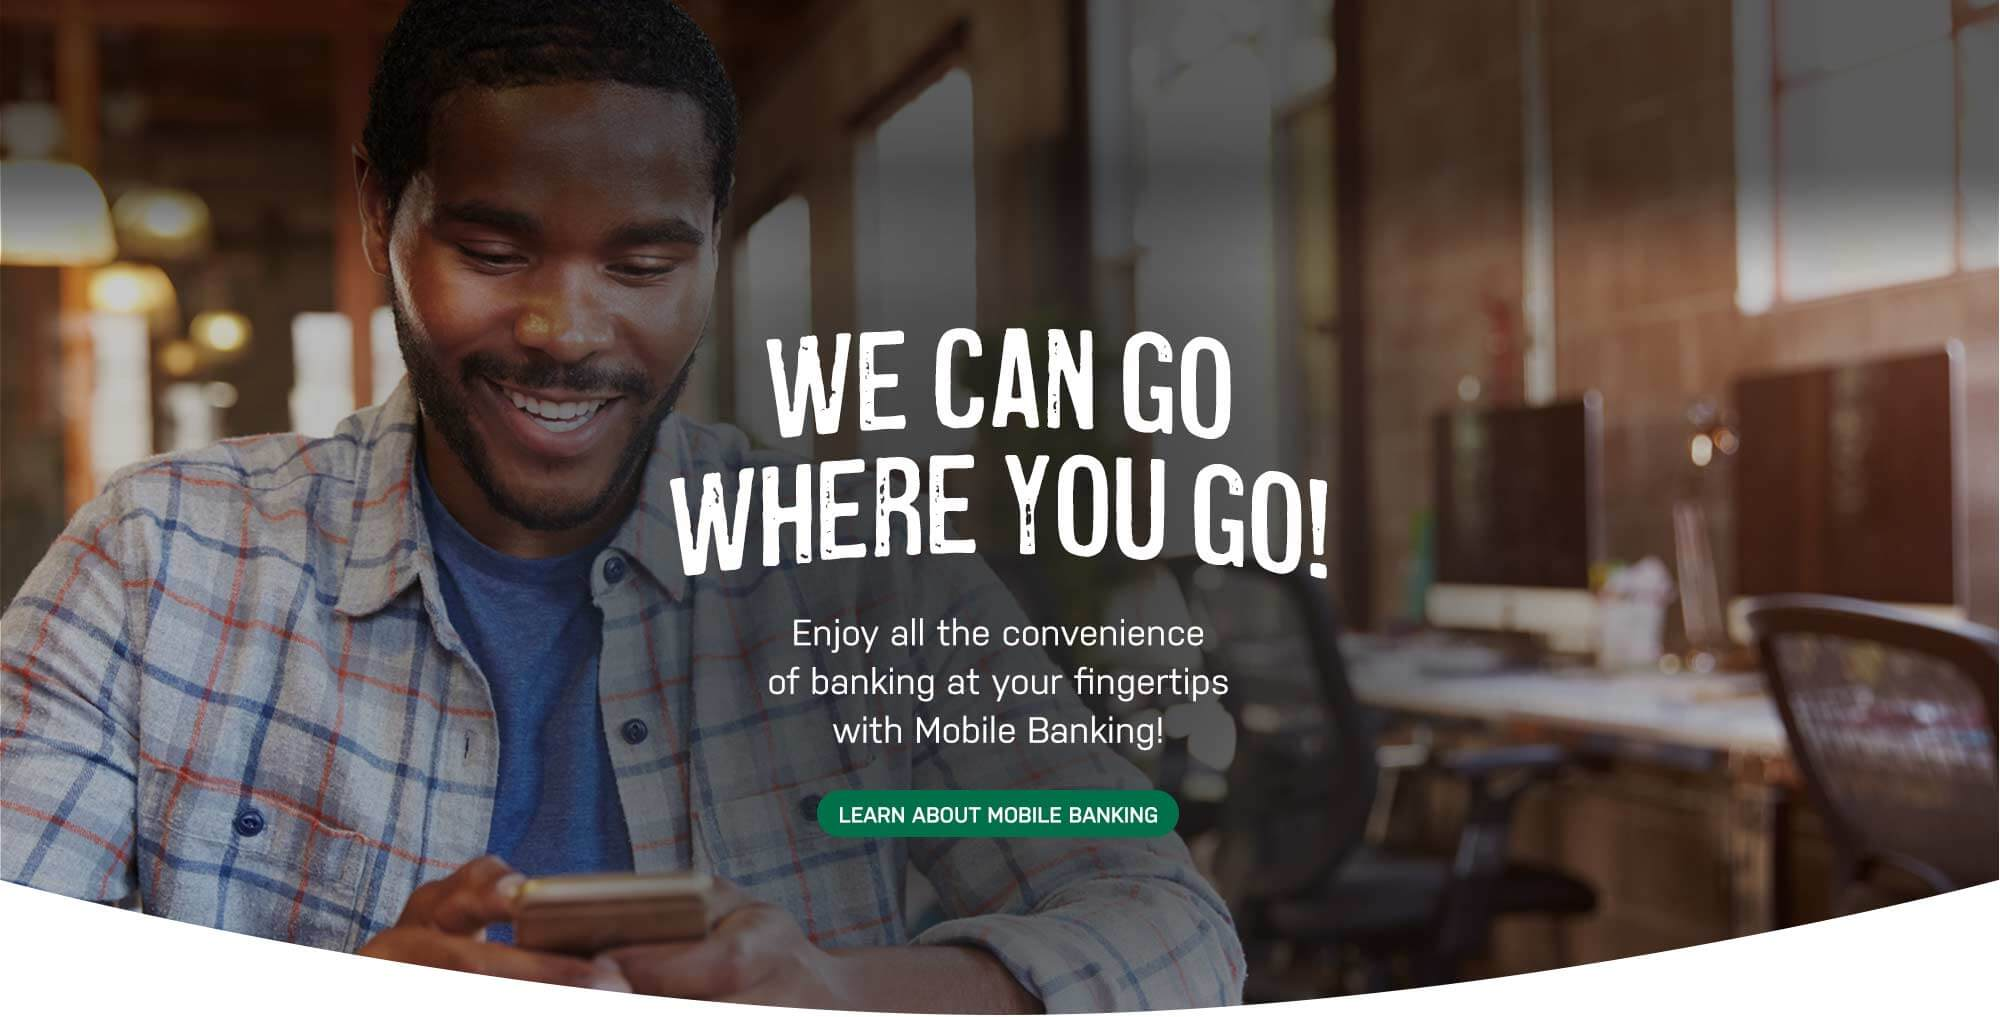 We can go where you go! Enjoy all the convenience of banking at your fingertips with mobile banking! Click for mobile banking details.